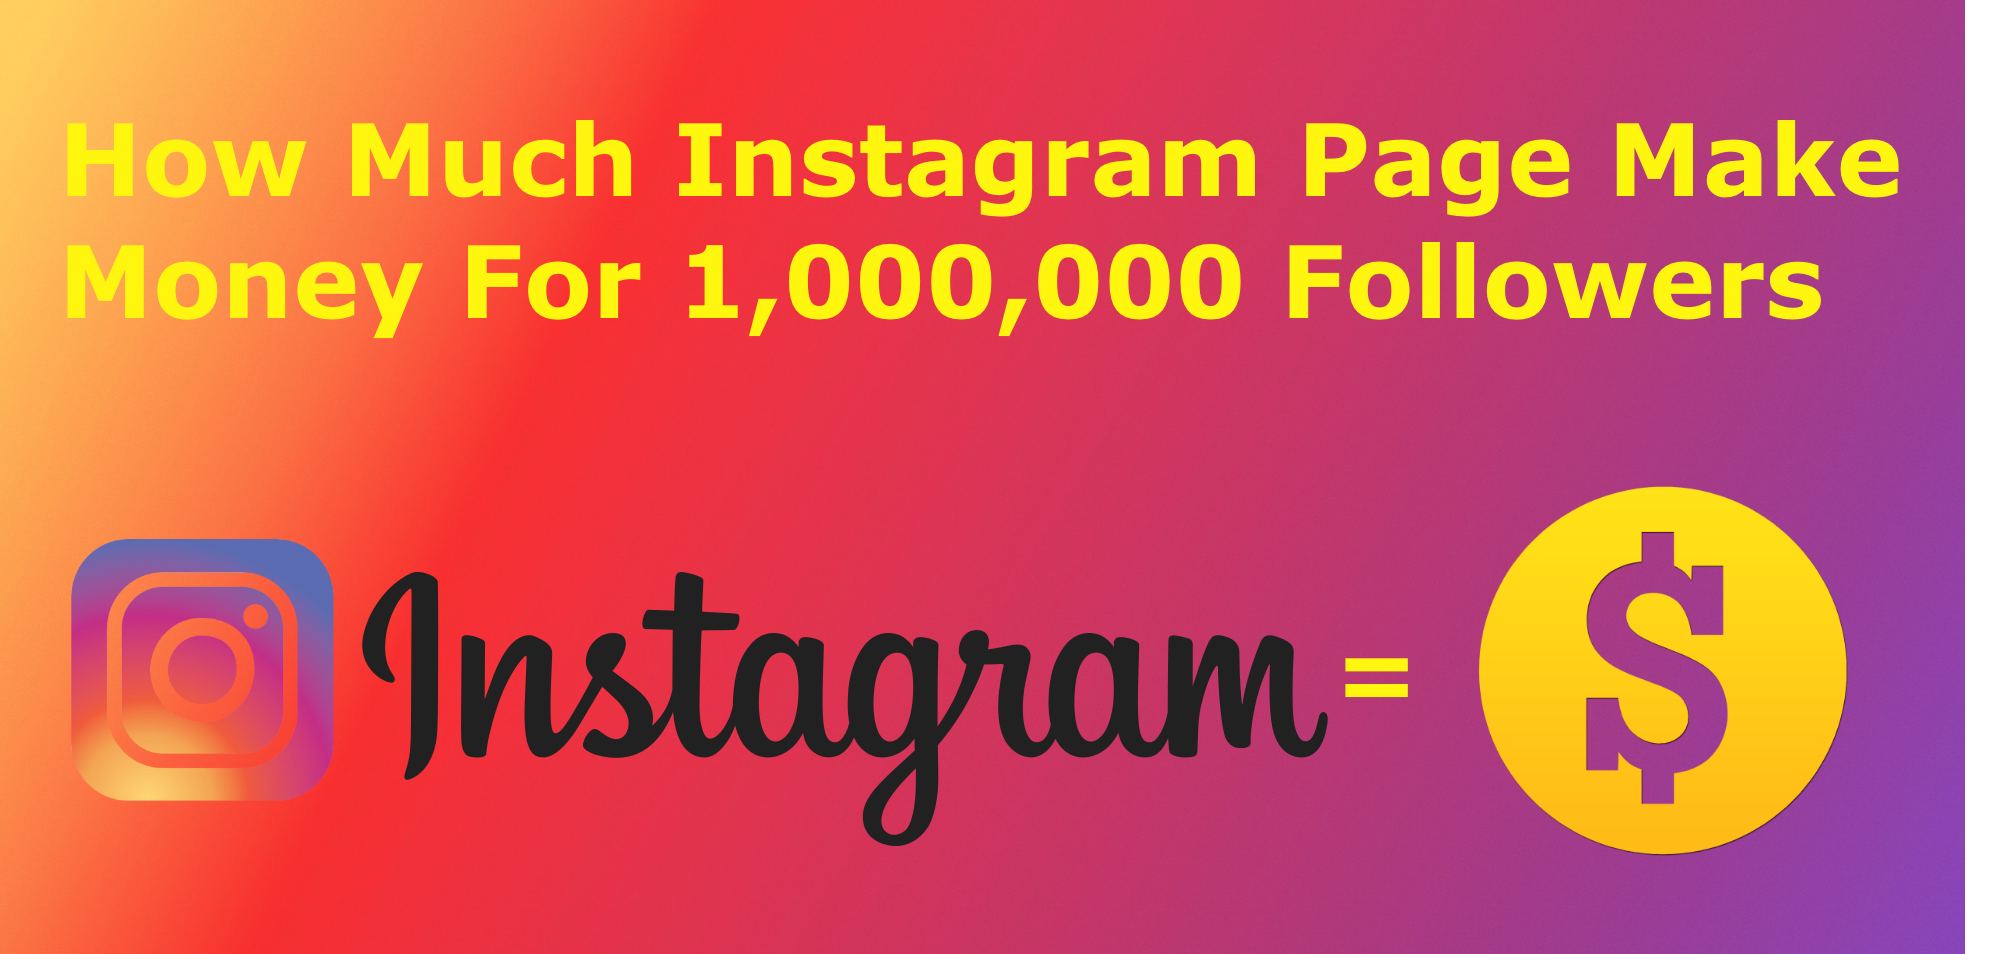 This Is How Much Instagram Page Make Money For 1,000,000 Followers